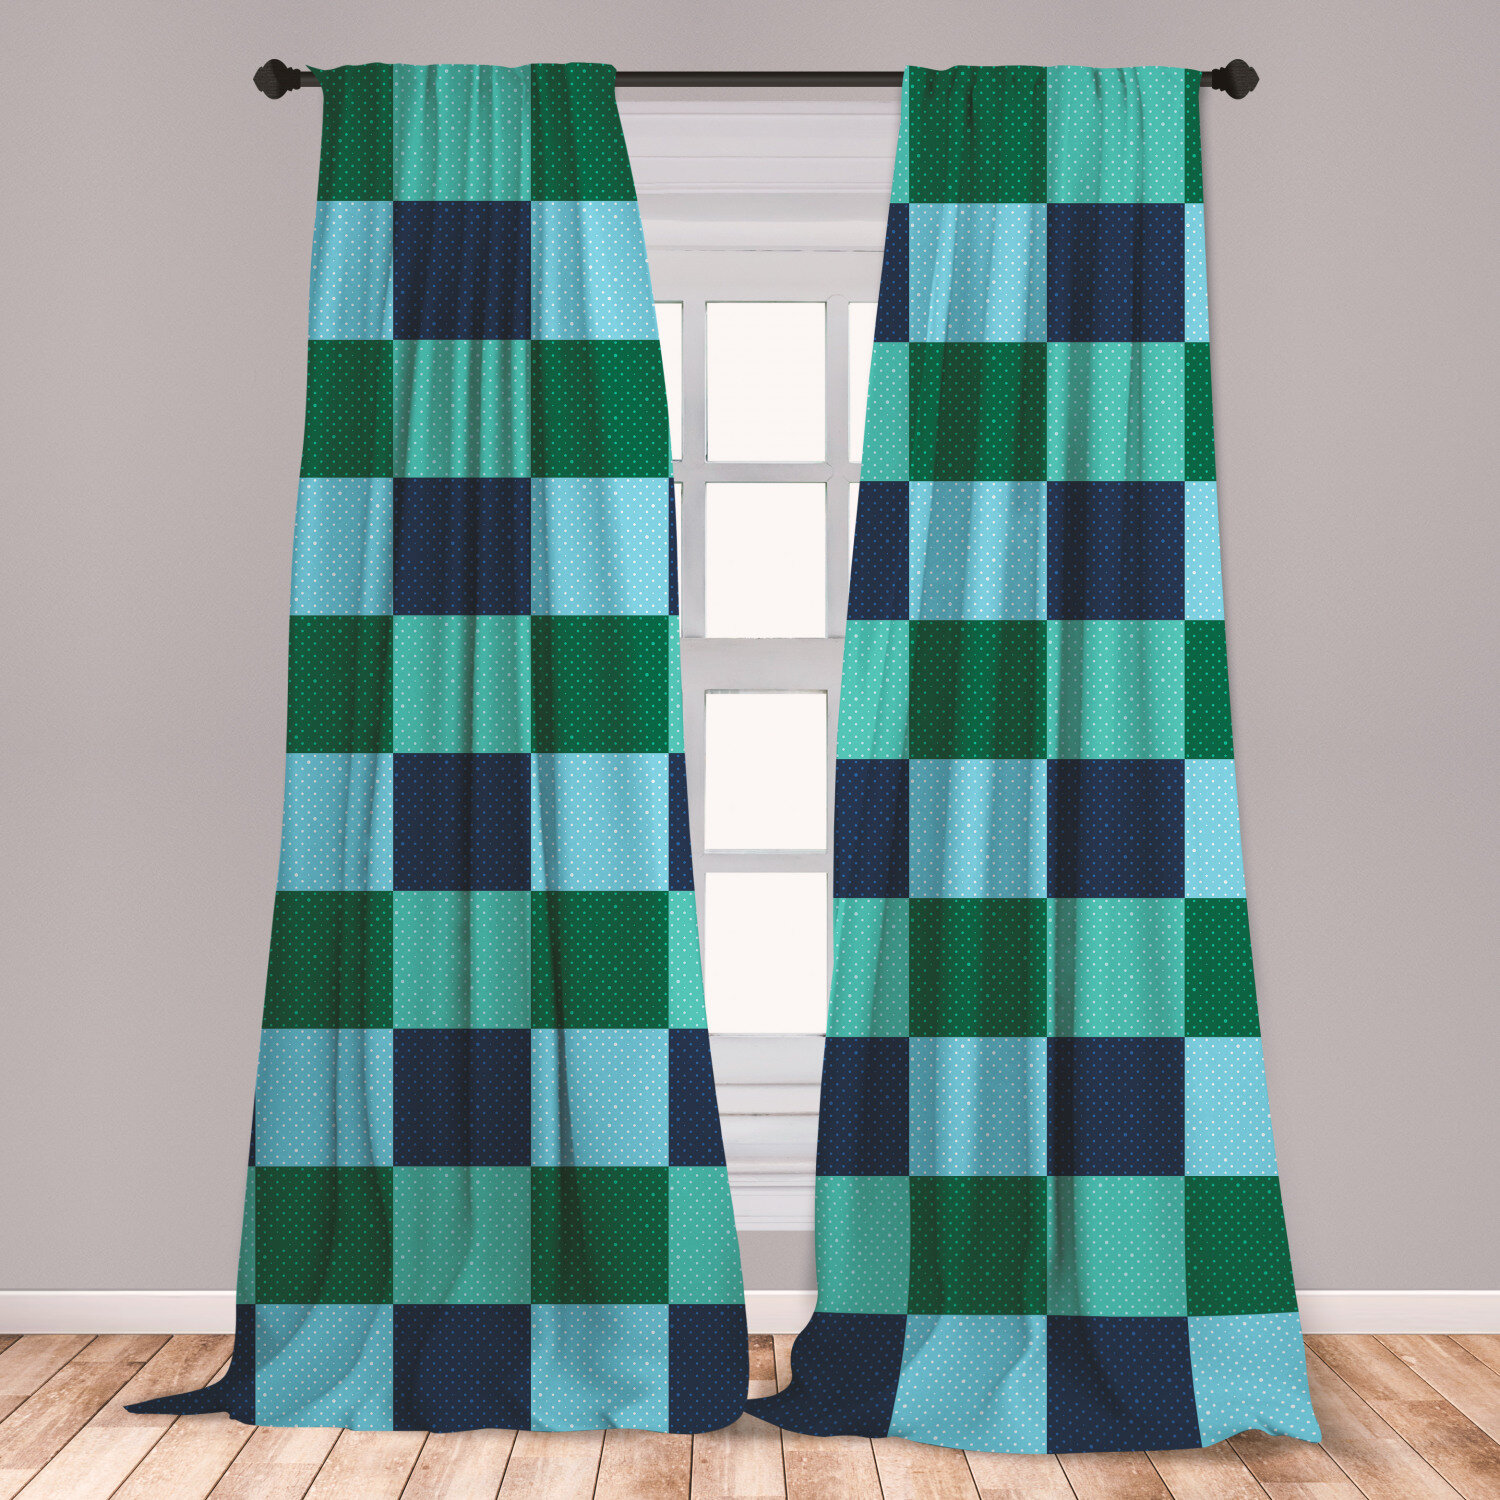 East Urban Home Ambesonne Navy And Teal Curtains Aquatic Colored Squares With Old Fashioned Polka Dots Retro Style Maritime Window Treatments 2 Panel Set For Living Room Bedroom Decor 56 X 95 Multicolor Wayfair